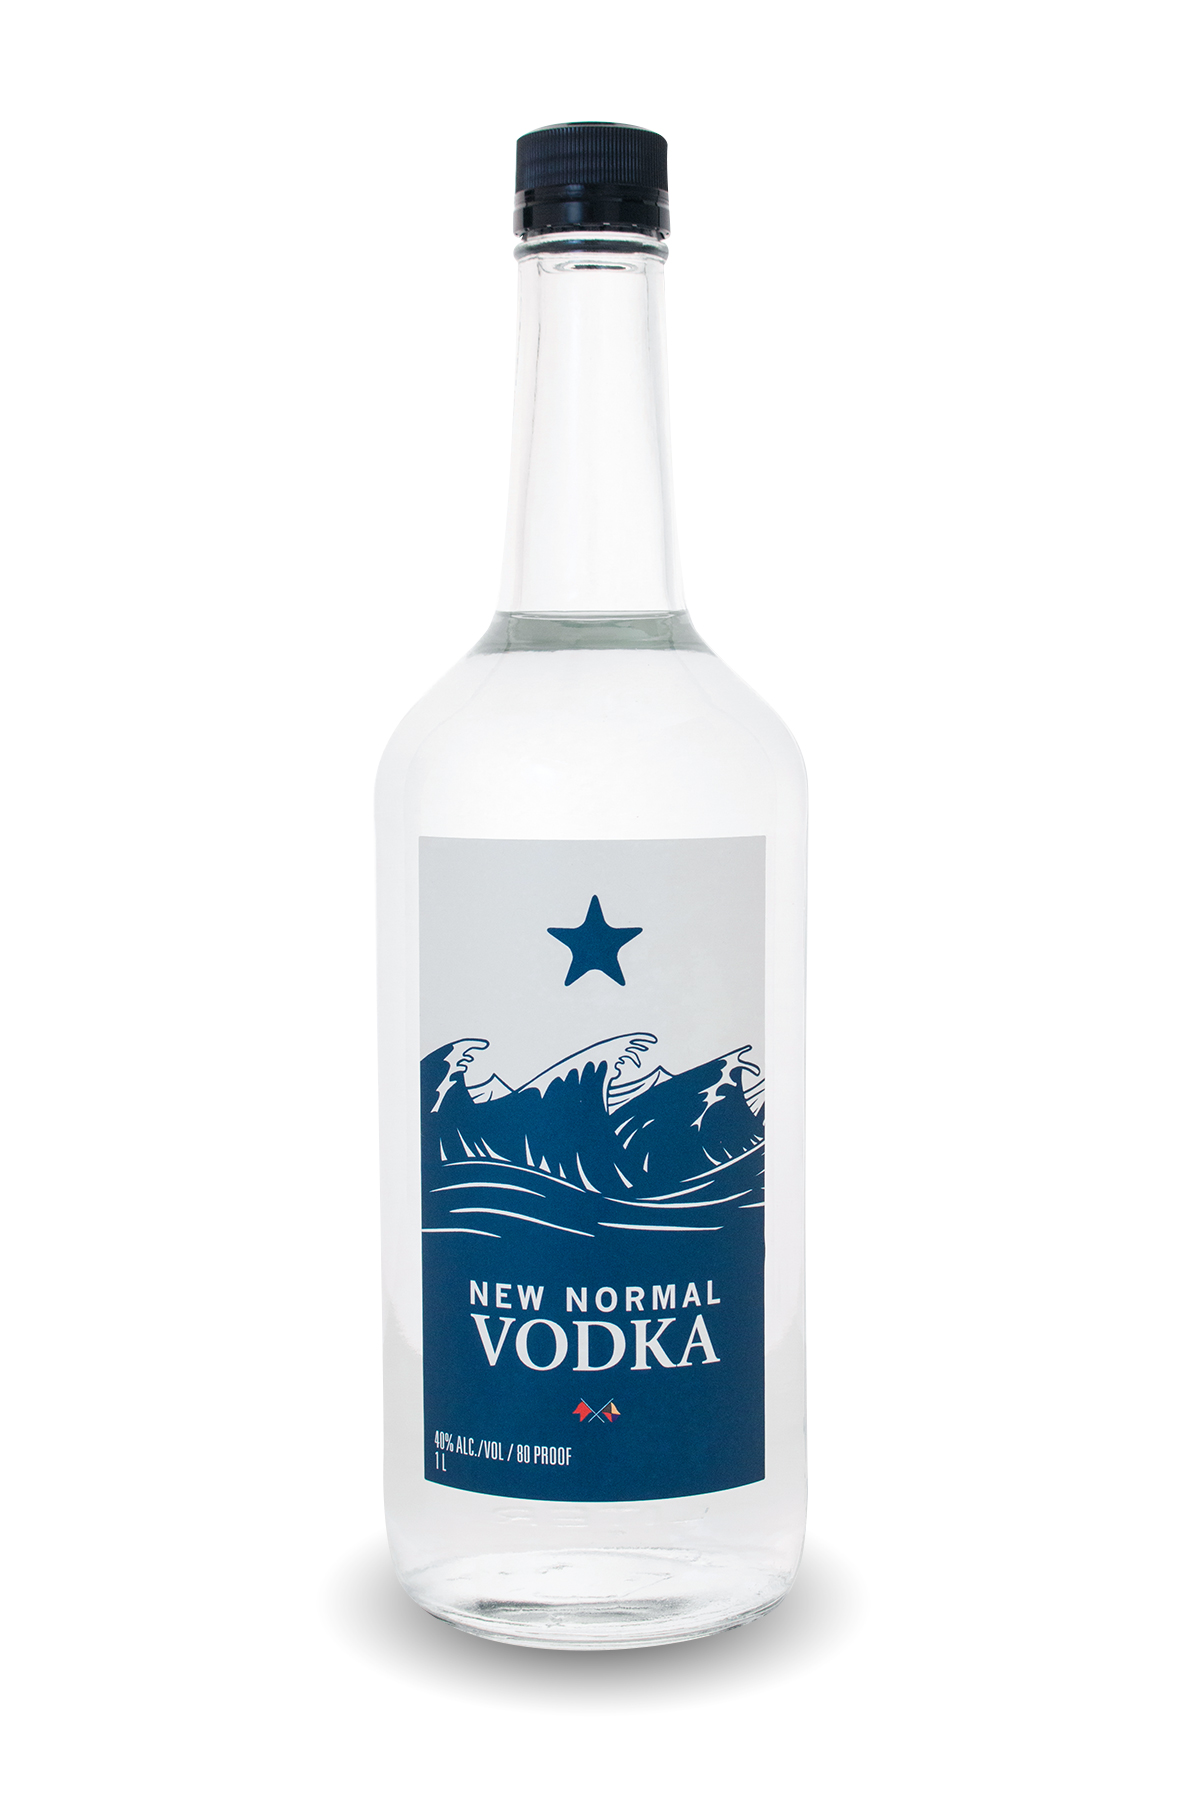 New Normal Vodka